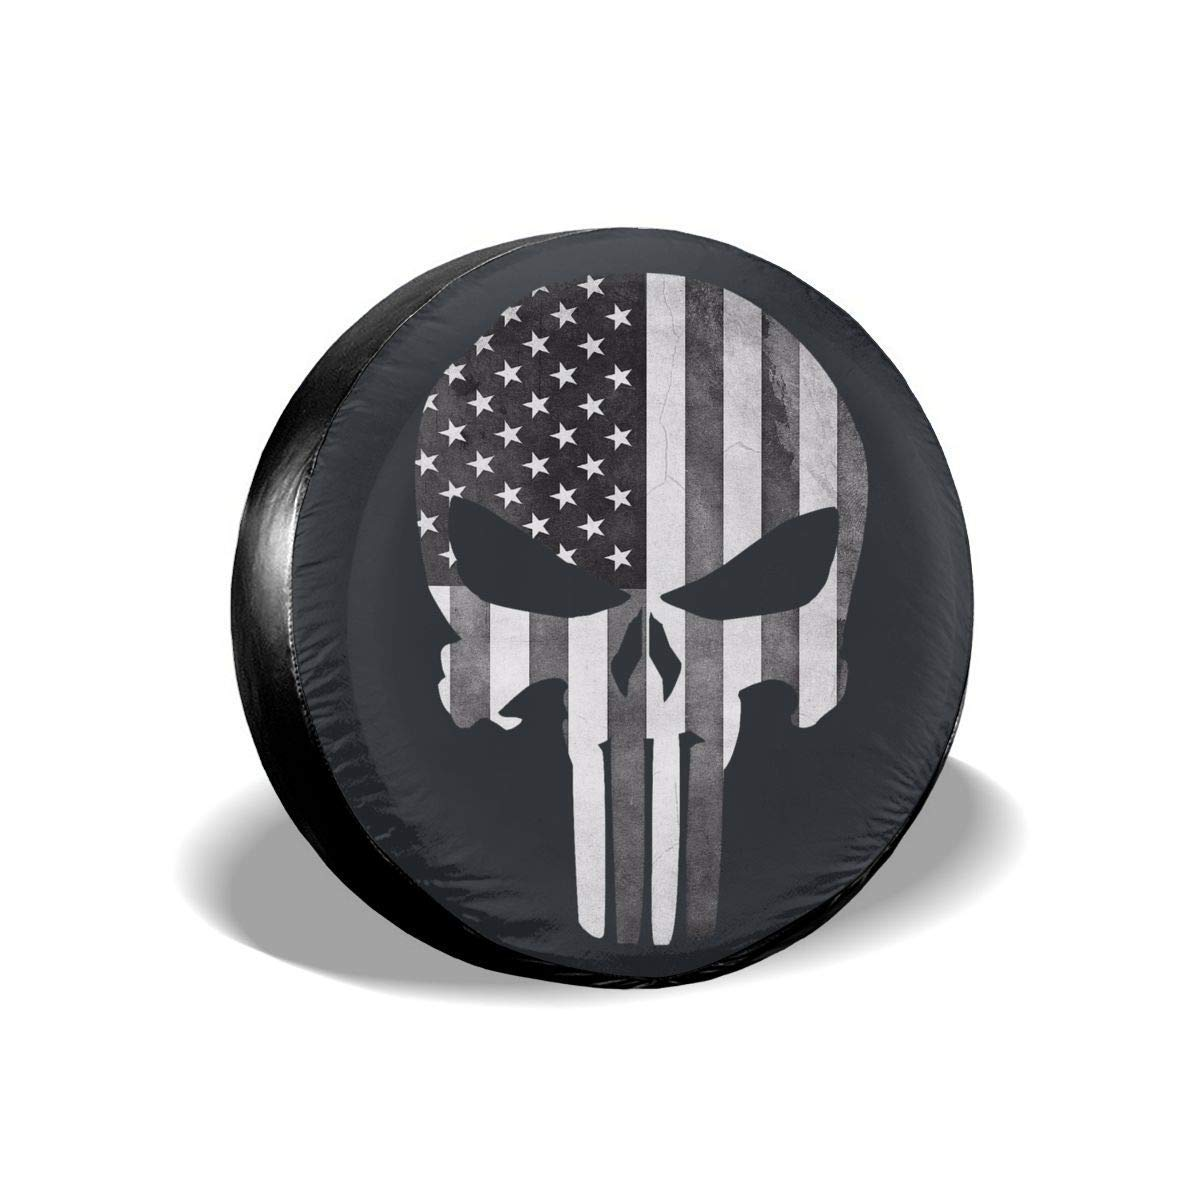 Vbnbvn Housses de pneus Skull Polyester Universal Dust-Proof Sunscreen Wheel Covers for Jeep Trailer RV SUV Truck and Many Vehicles 14 15 16 17